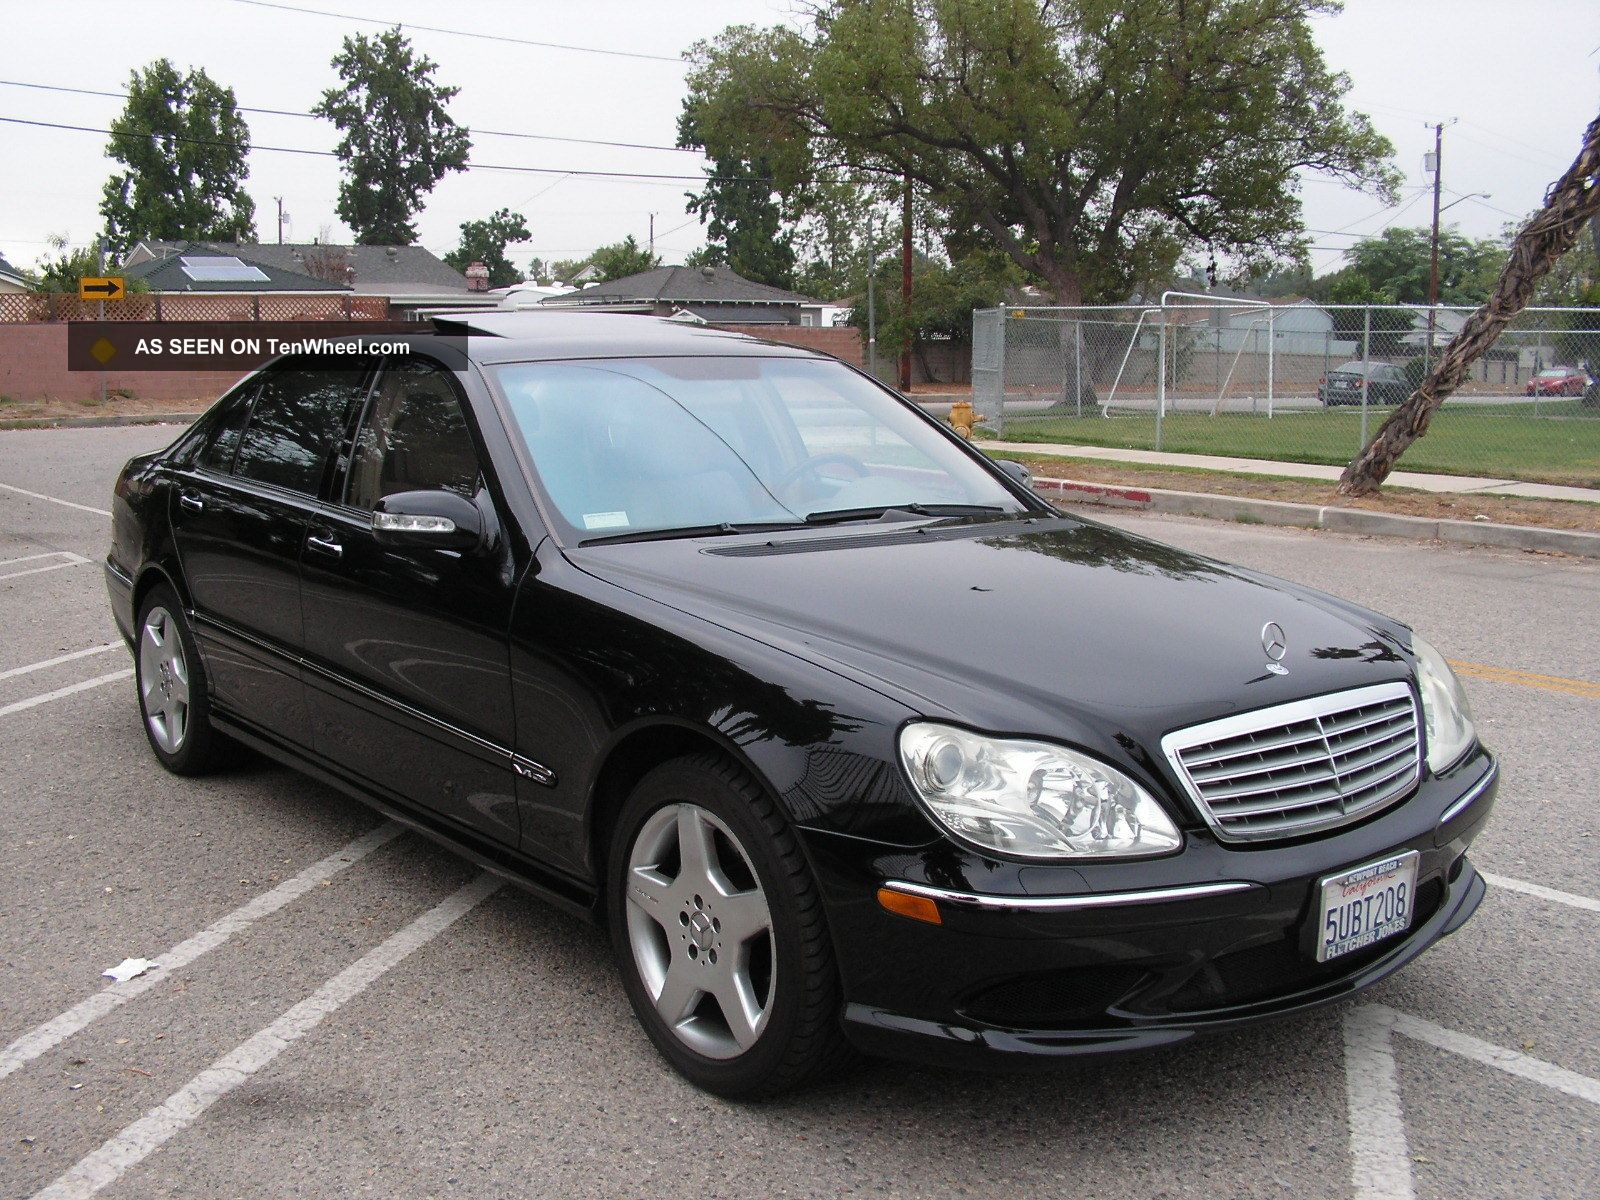 2003 Mercedes Benz S600 Amg Twin Turbo,  493hp,  590tq,  Exquisite Luxury Sedan S-Class photo